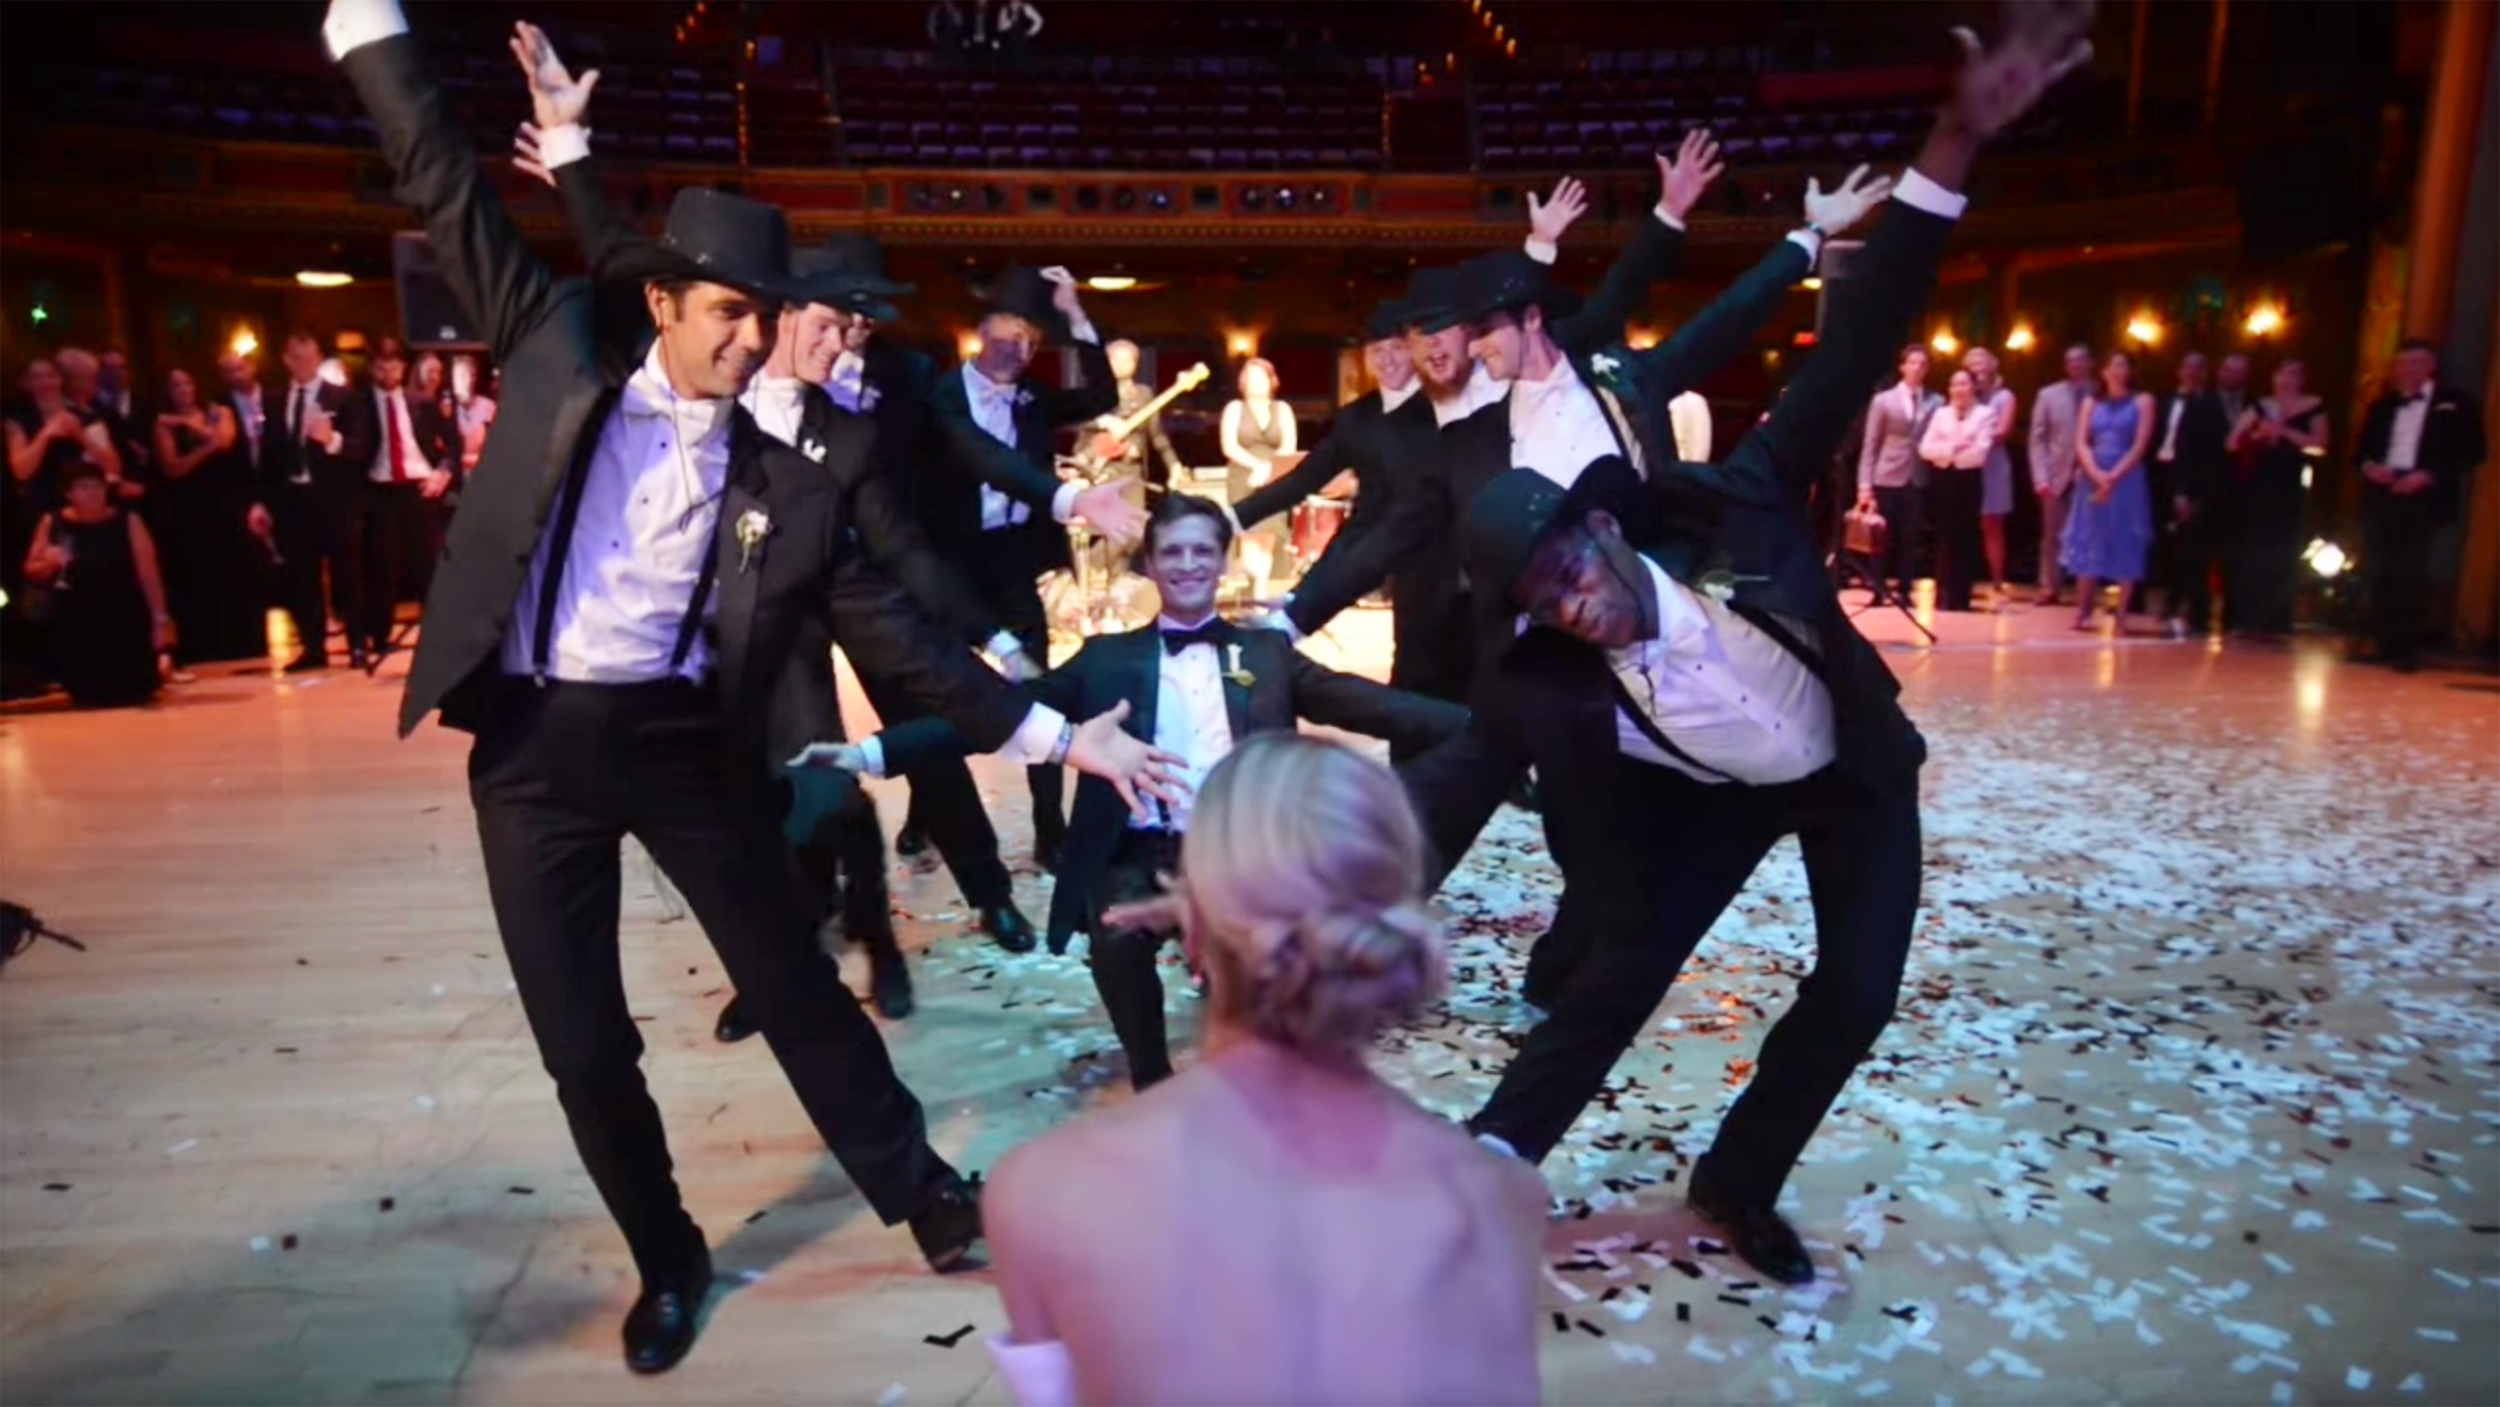 Kirk Henning A Professional Dancer Surprises Bride With An Epic Wedding Dance